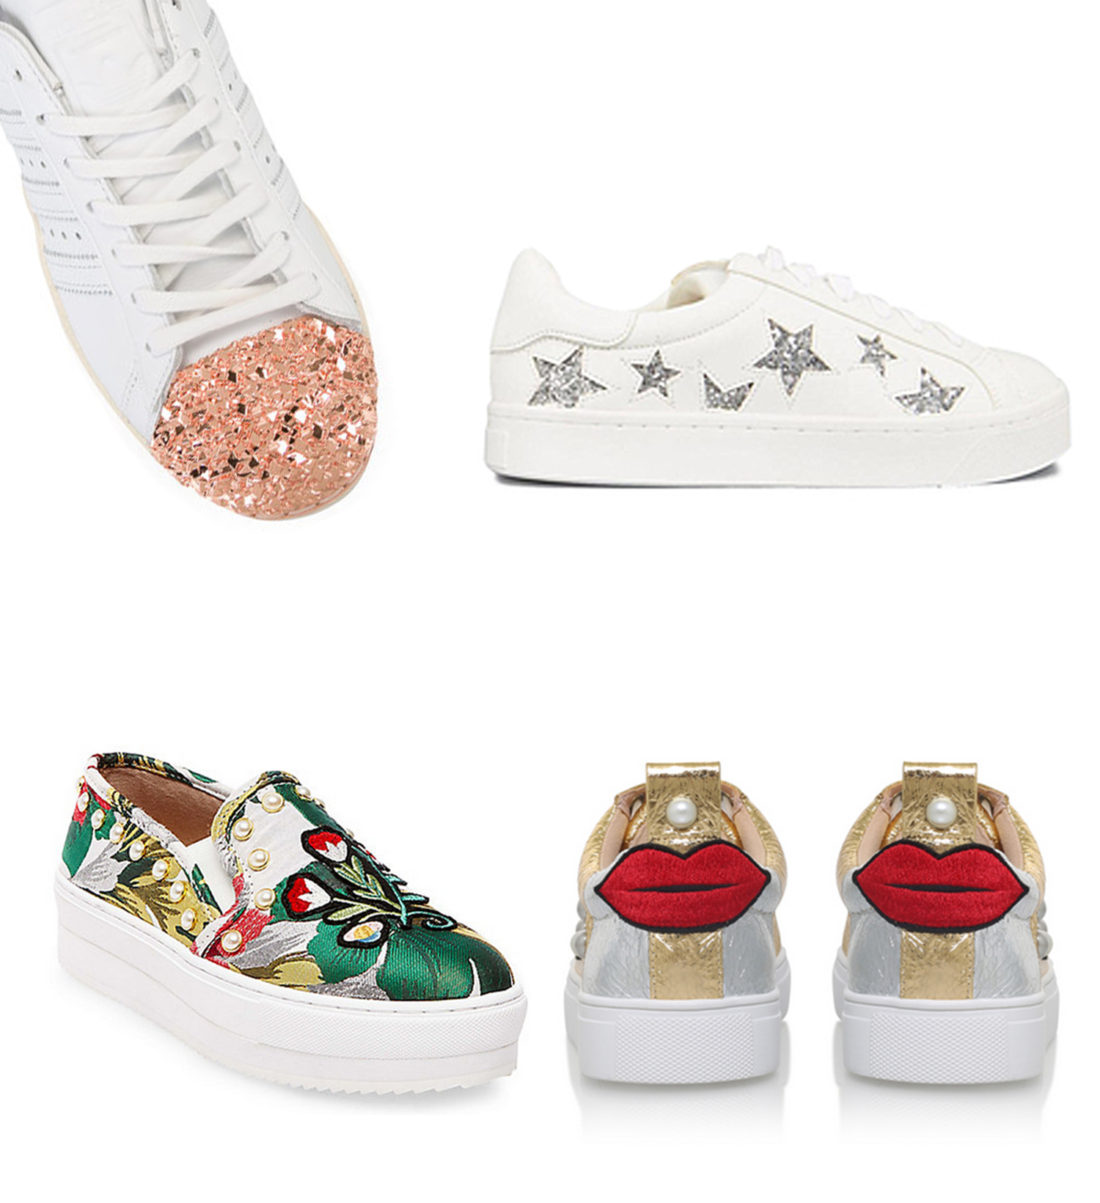 Embellished-Sneakers-Lipstick-and-Brunch-1100x1203